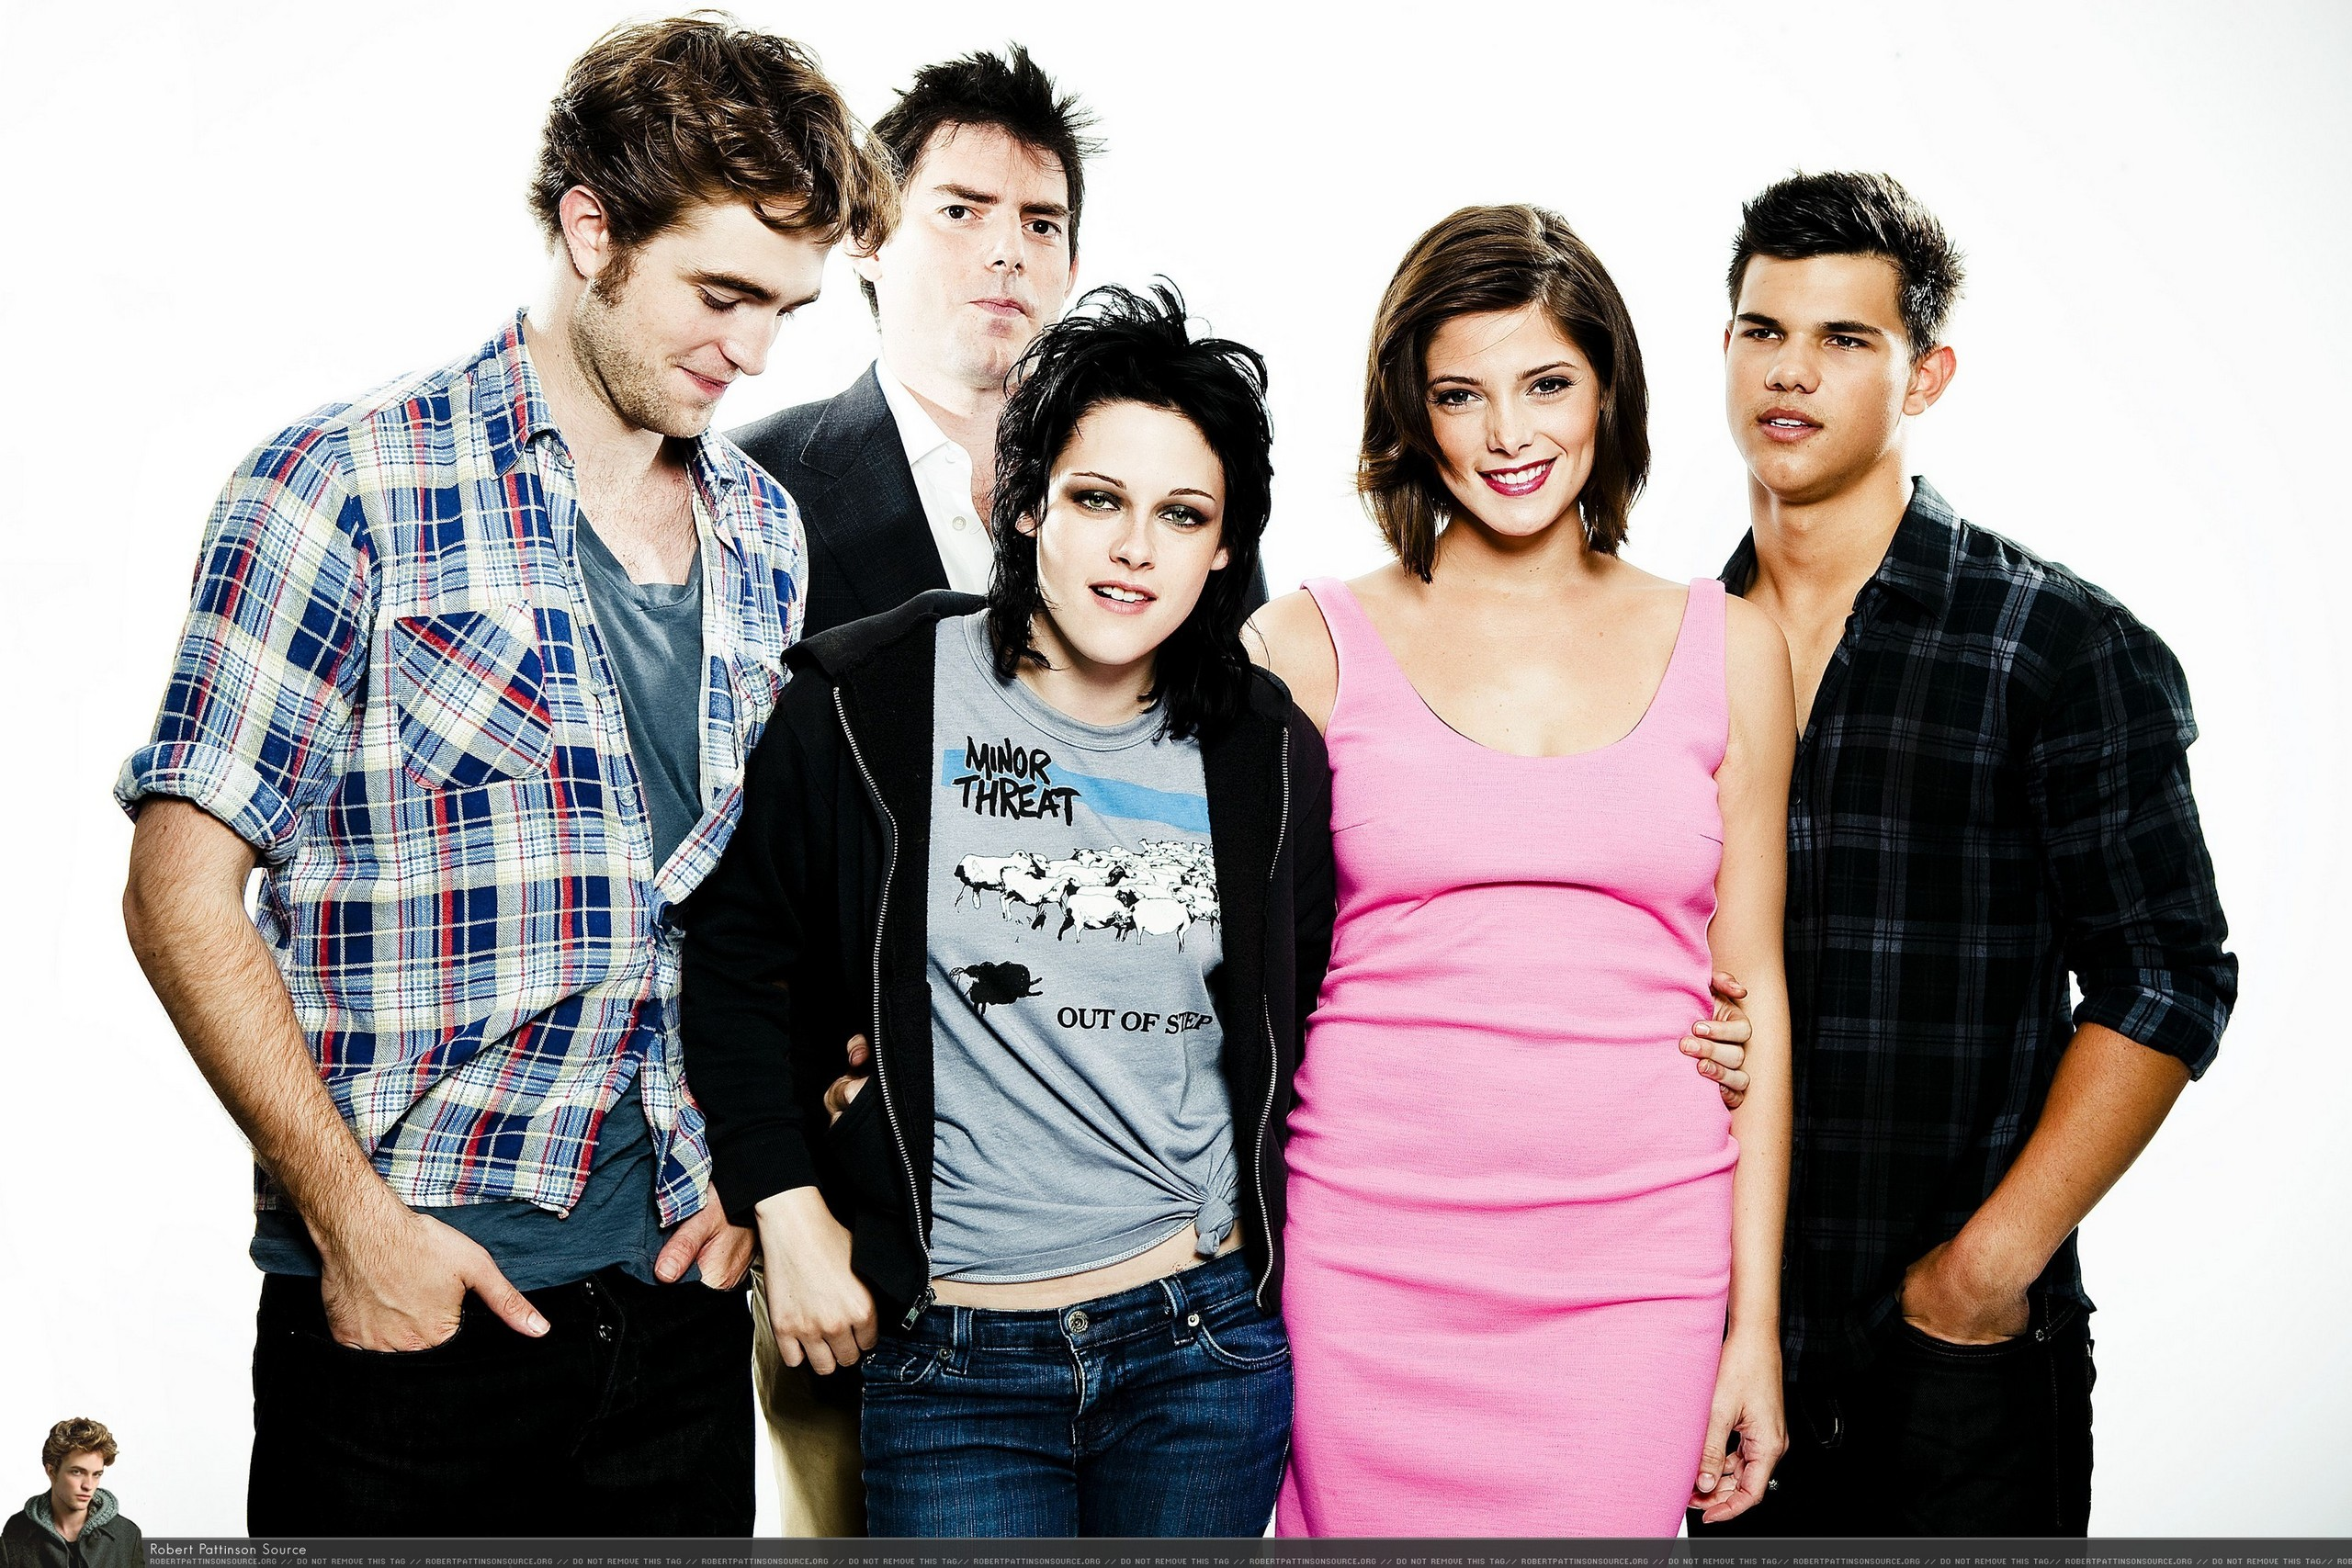 HQ, clear and super large Pictures from Comic Con 09